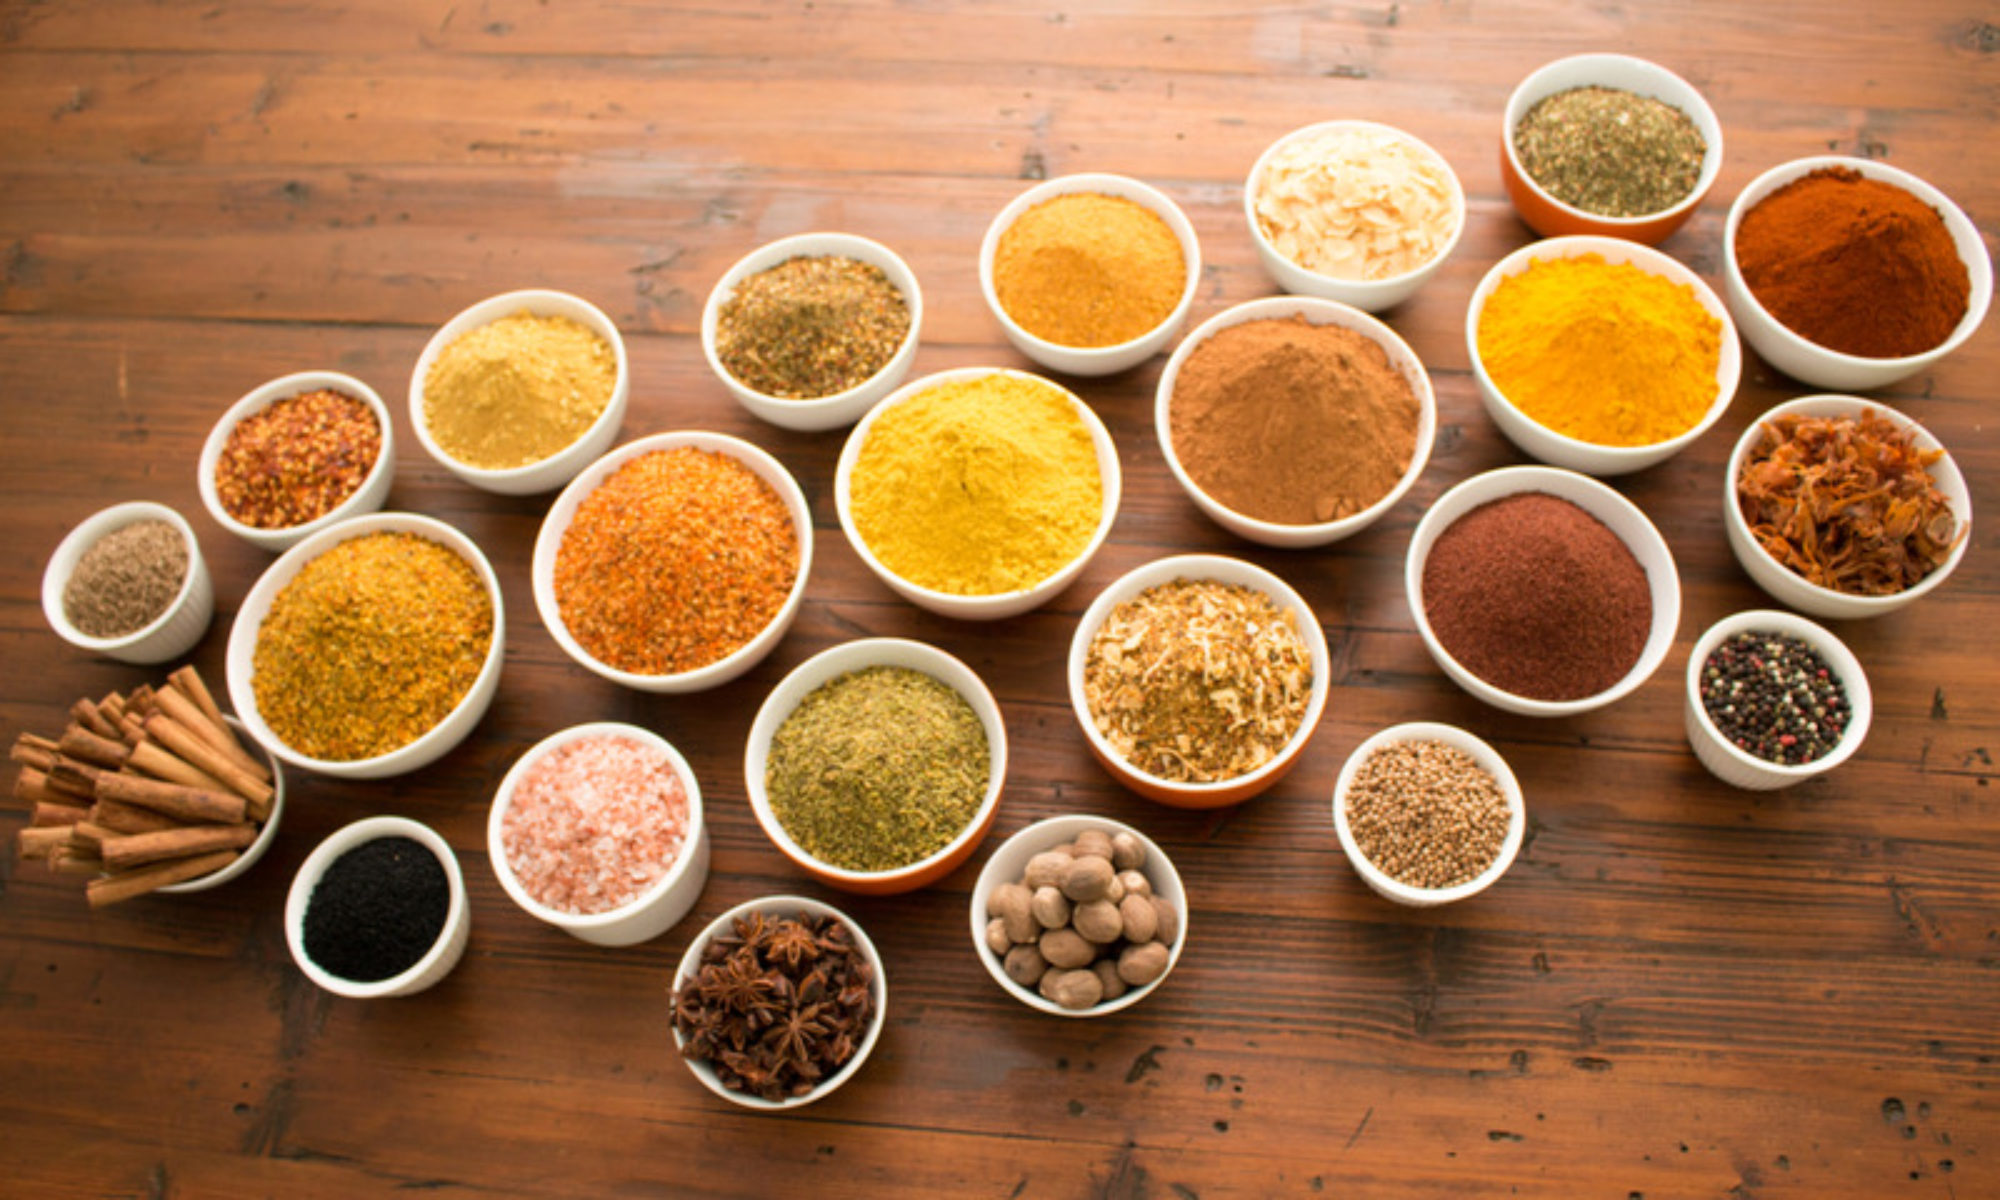 The Spice Stall